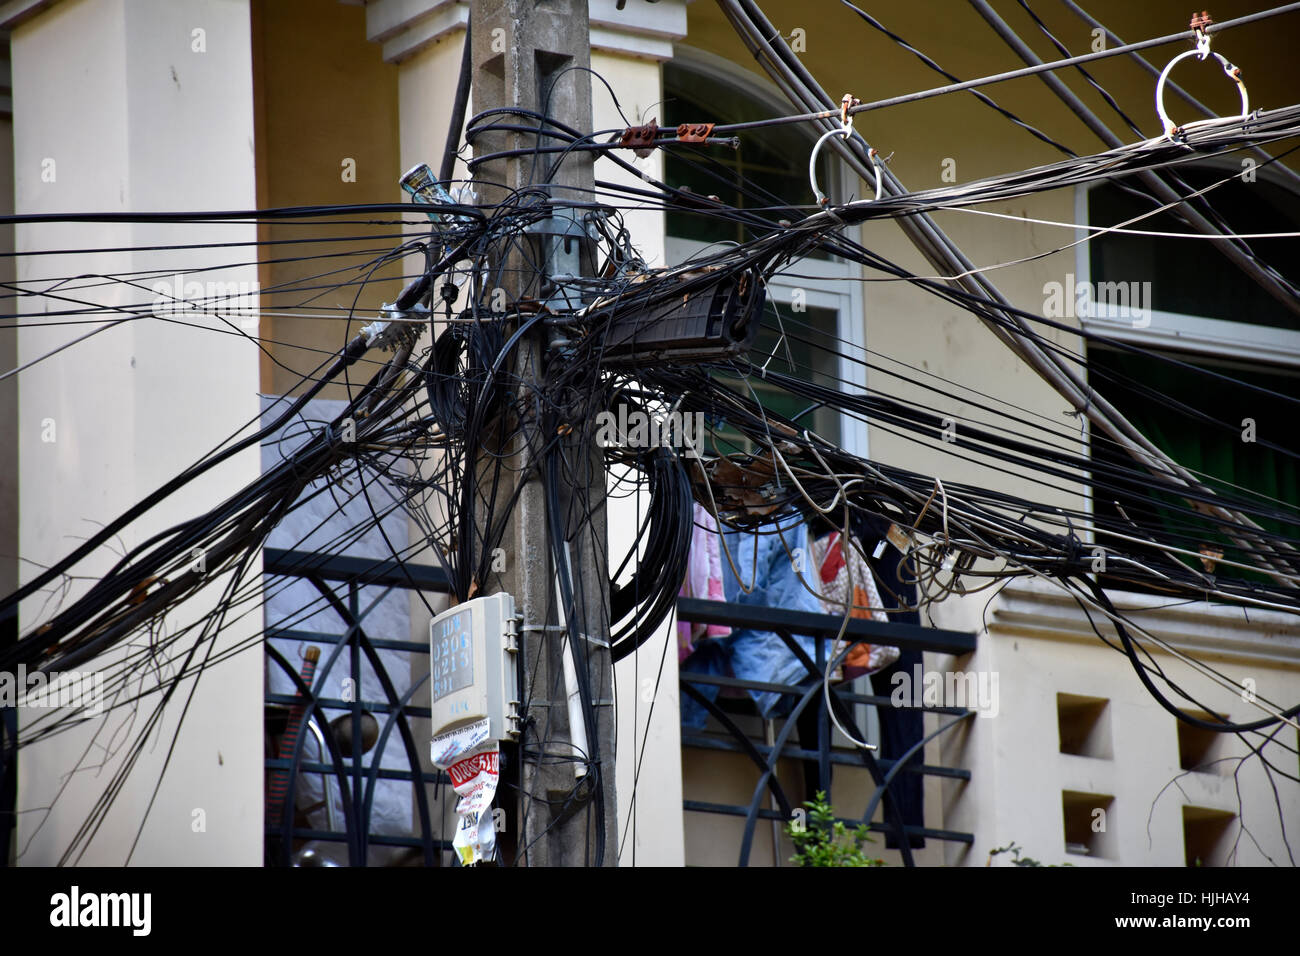 Entangled electrical wires on the streets of Ho Chi Minh City, Vietnam - Stock Image